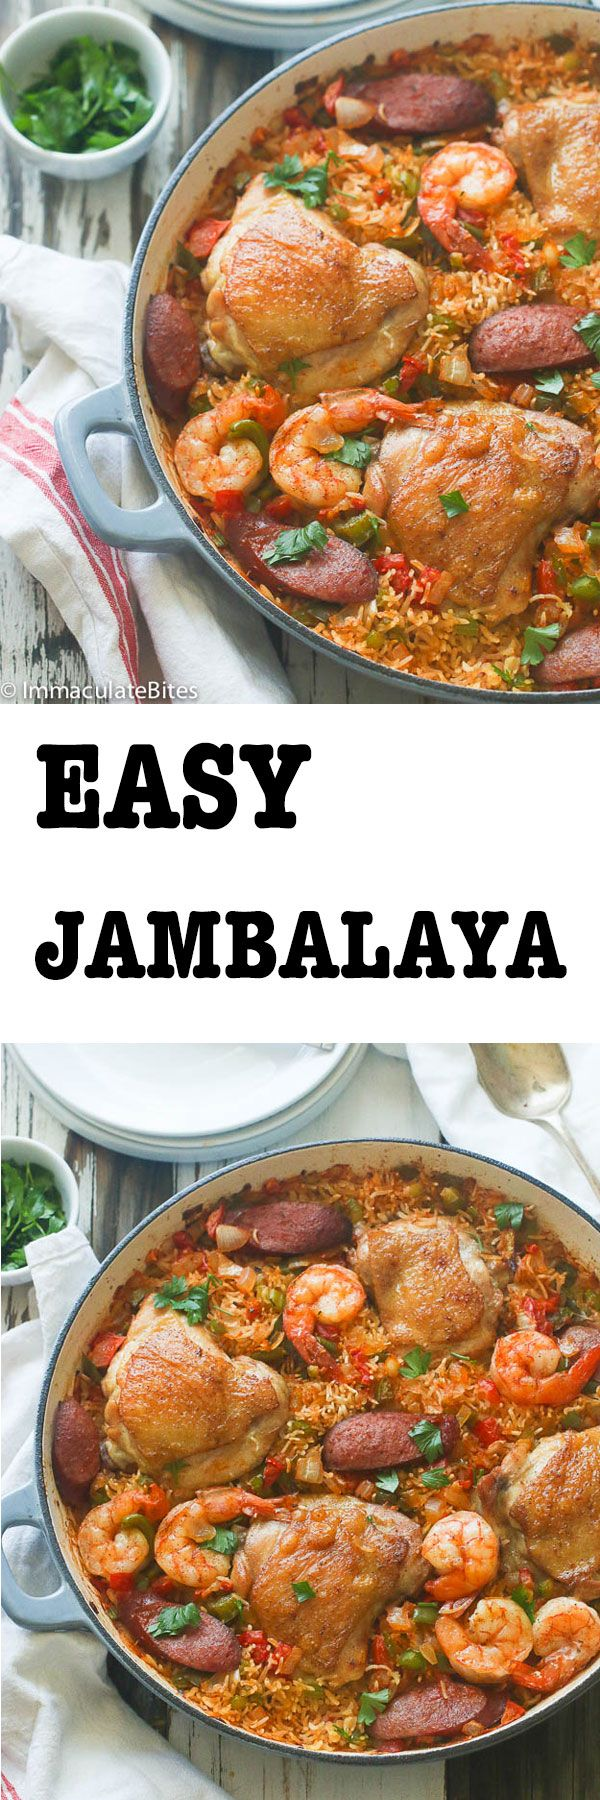 Easy Jambalaya! A Classic Southern one pot dish with bold flavors  made easy !Easy  enough for a weeknight meal, yet makes a sumptuous  meal when entertaining . Simply Delicious !! Although it originates from Louisiana, it has French and Spanish roots, the use of spices is reminiscent of what you'll find in African and Caribbean Cuisine. For those unfamiliar …